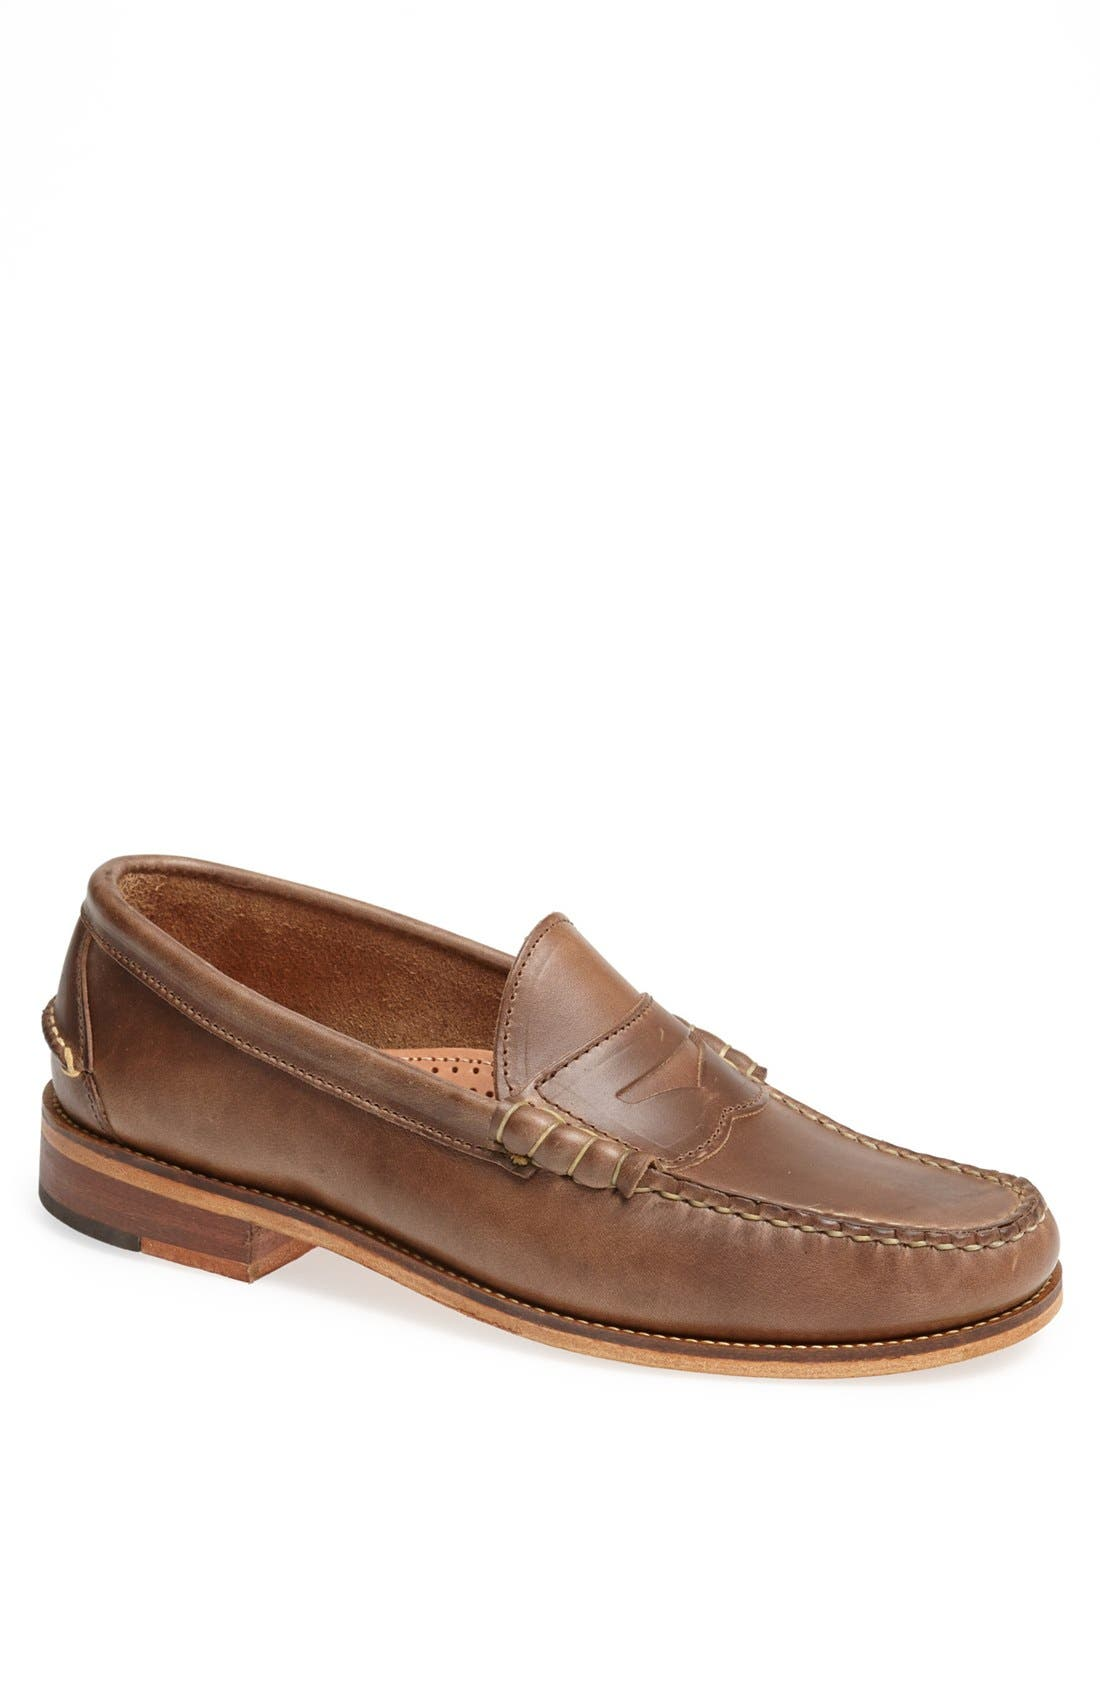 Oak Street Bootmakers Beefroll Penny Loafer